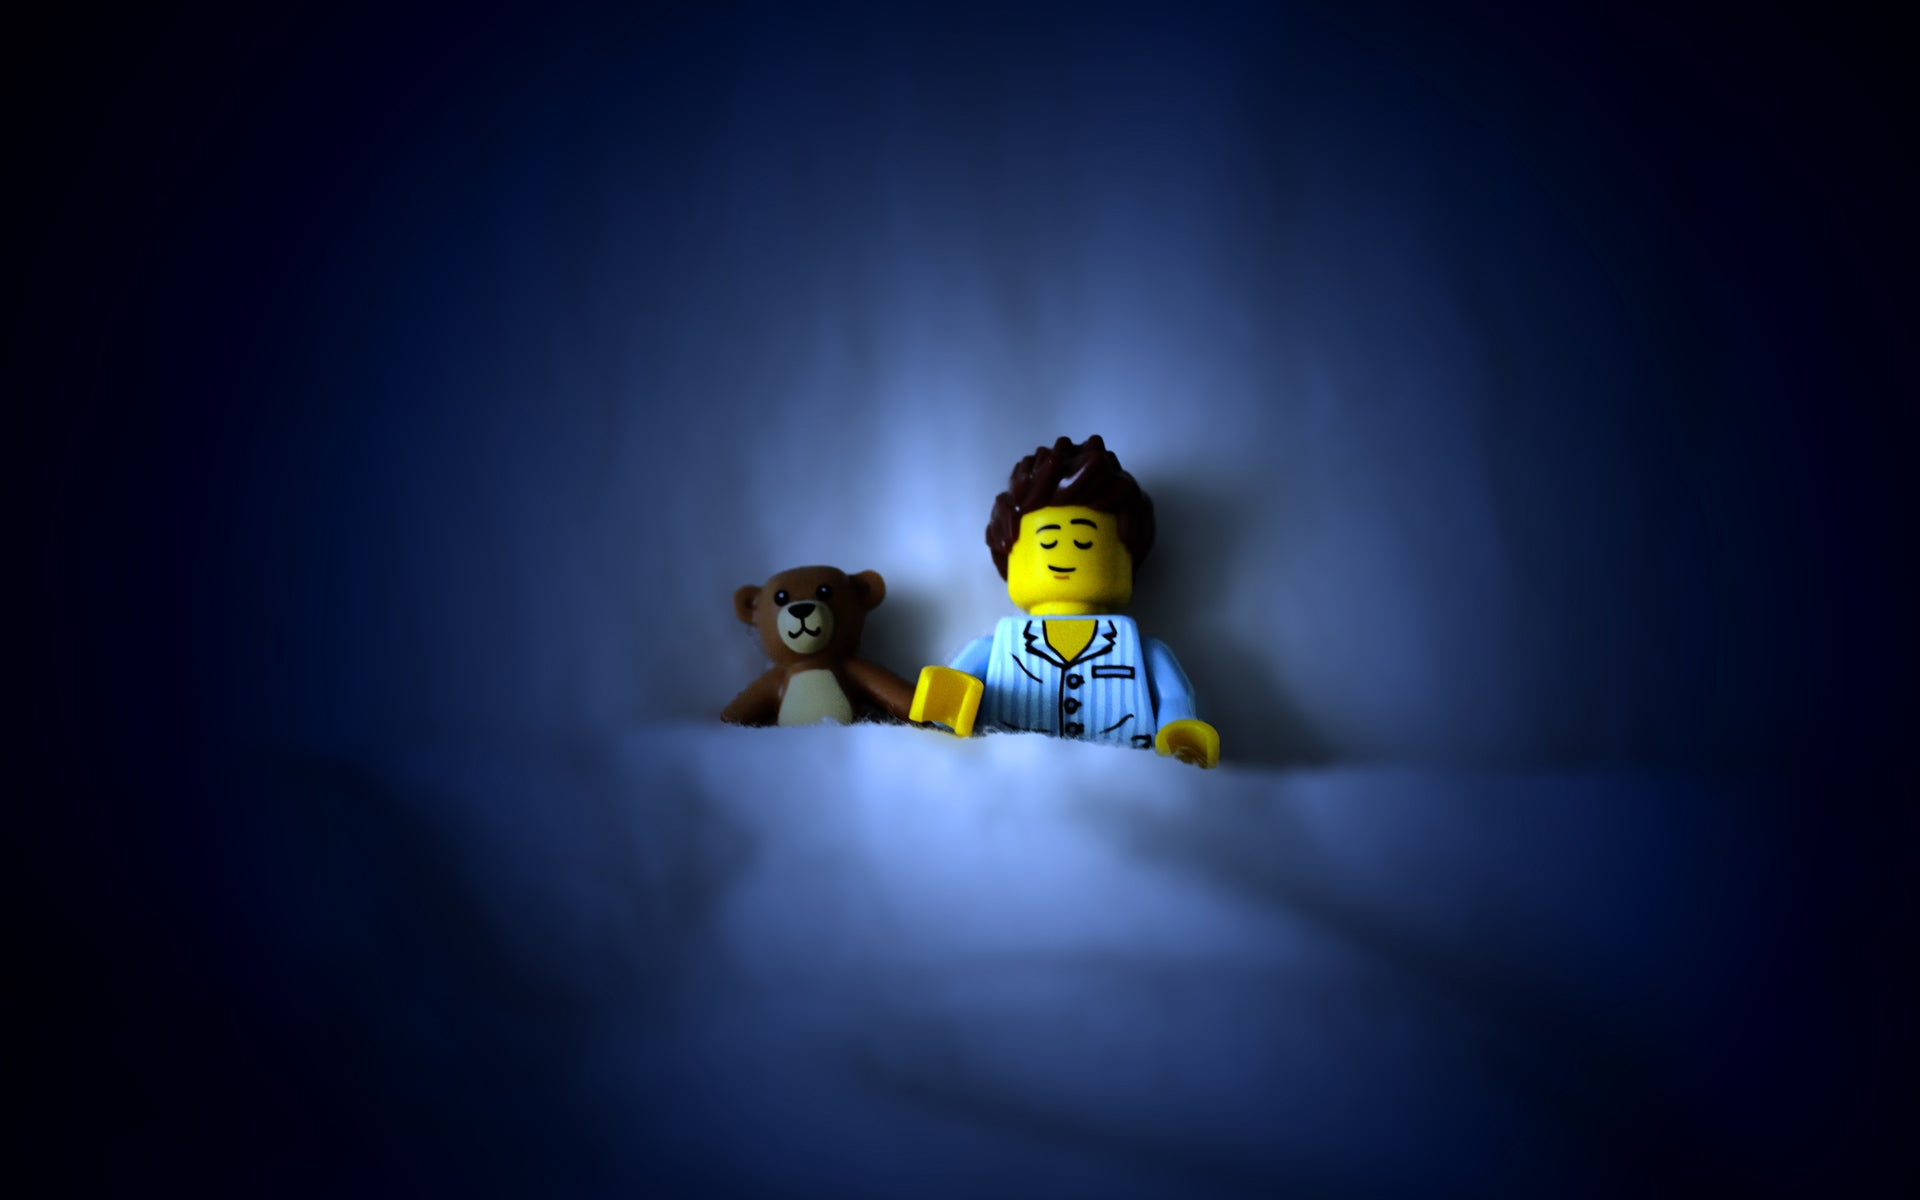 Put Some Lego People on Your Desktop With These Wallpapers